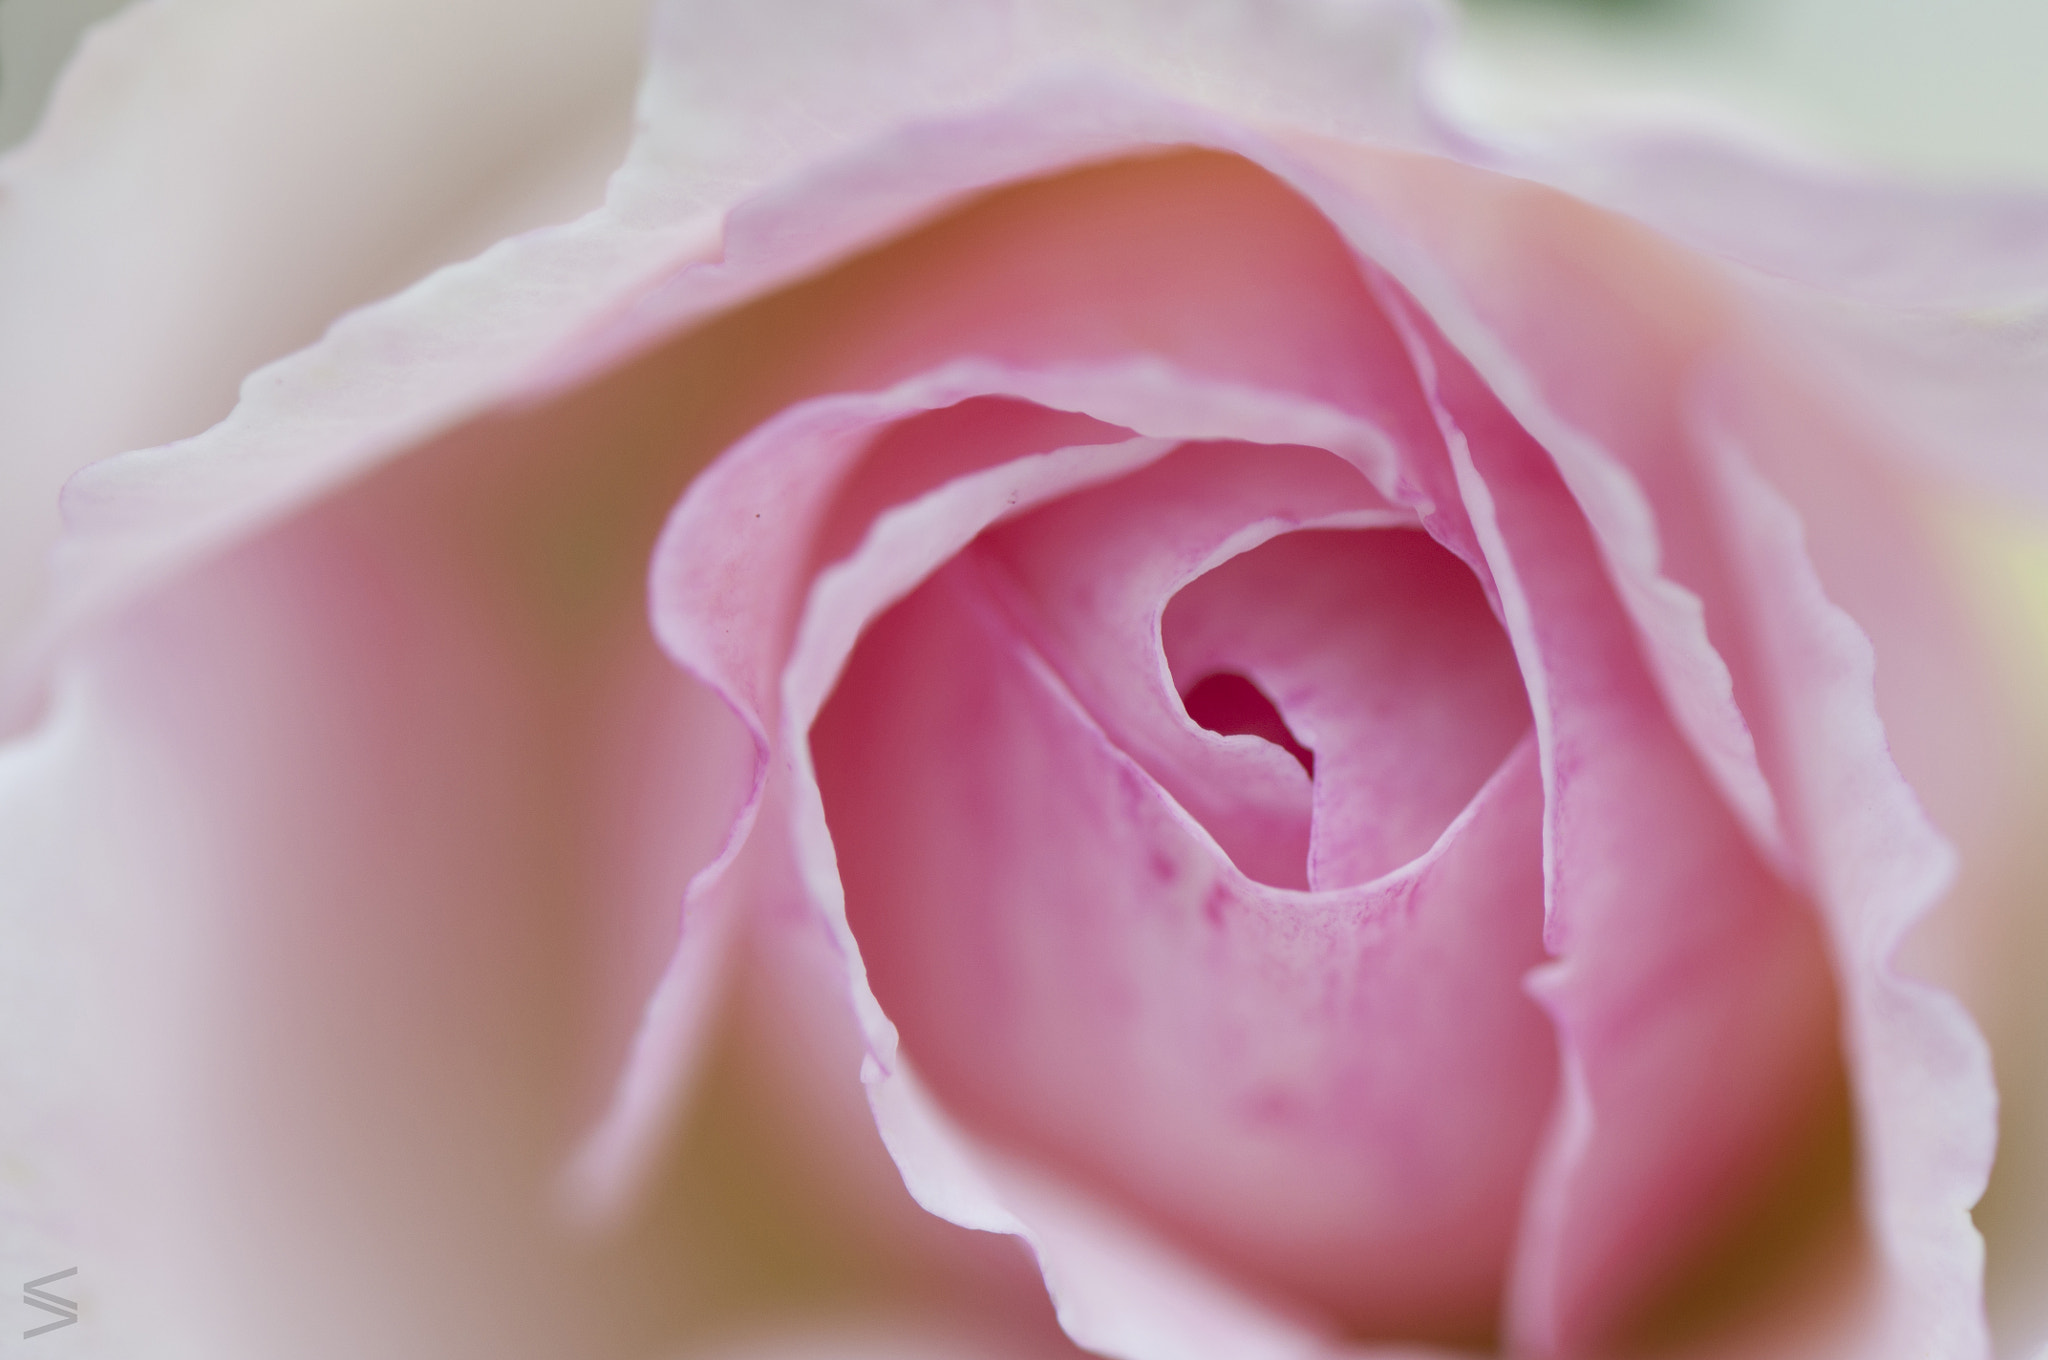 Photograph Macro of a Rose by Veronica Vascotto on 500px